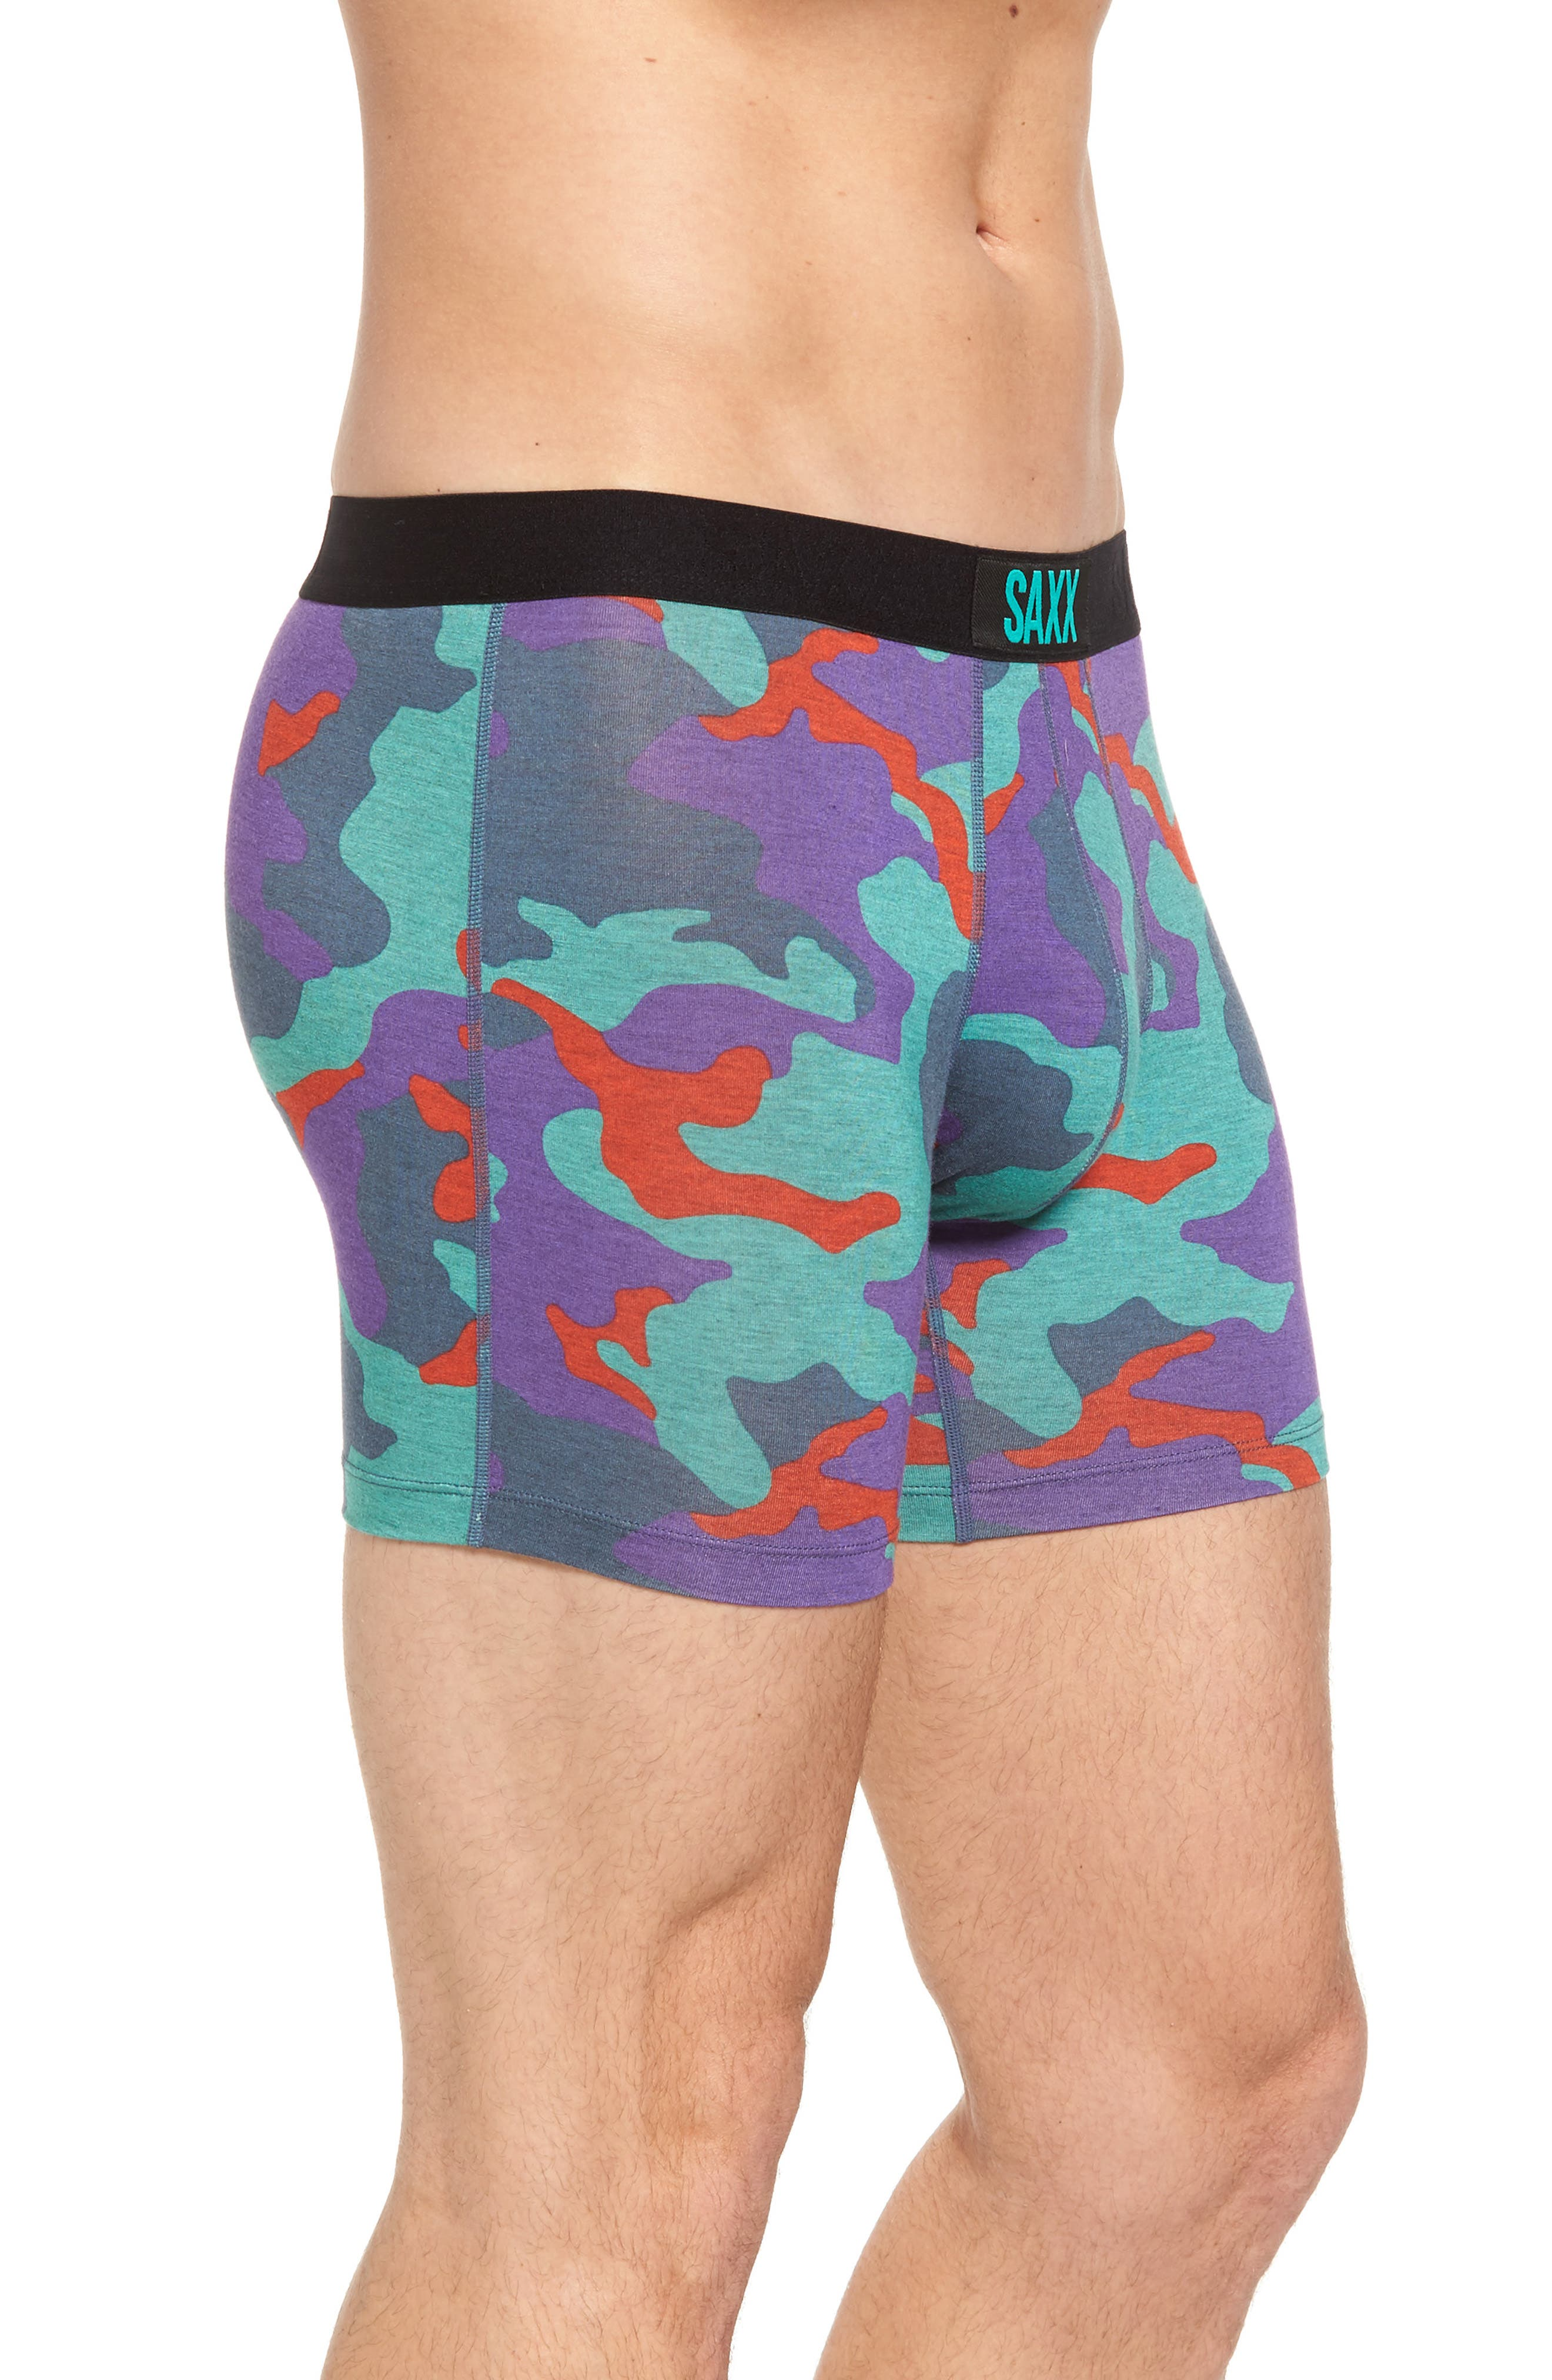 Vibe Stretch Boxer Briefs,                             Alternate thumbnail 3, color,                             521